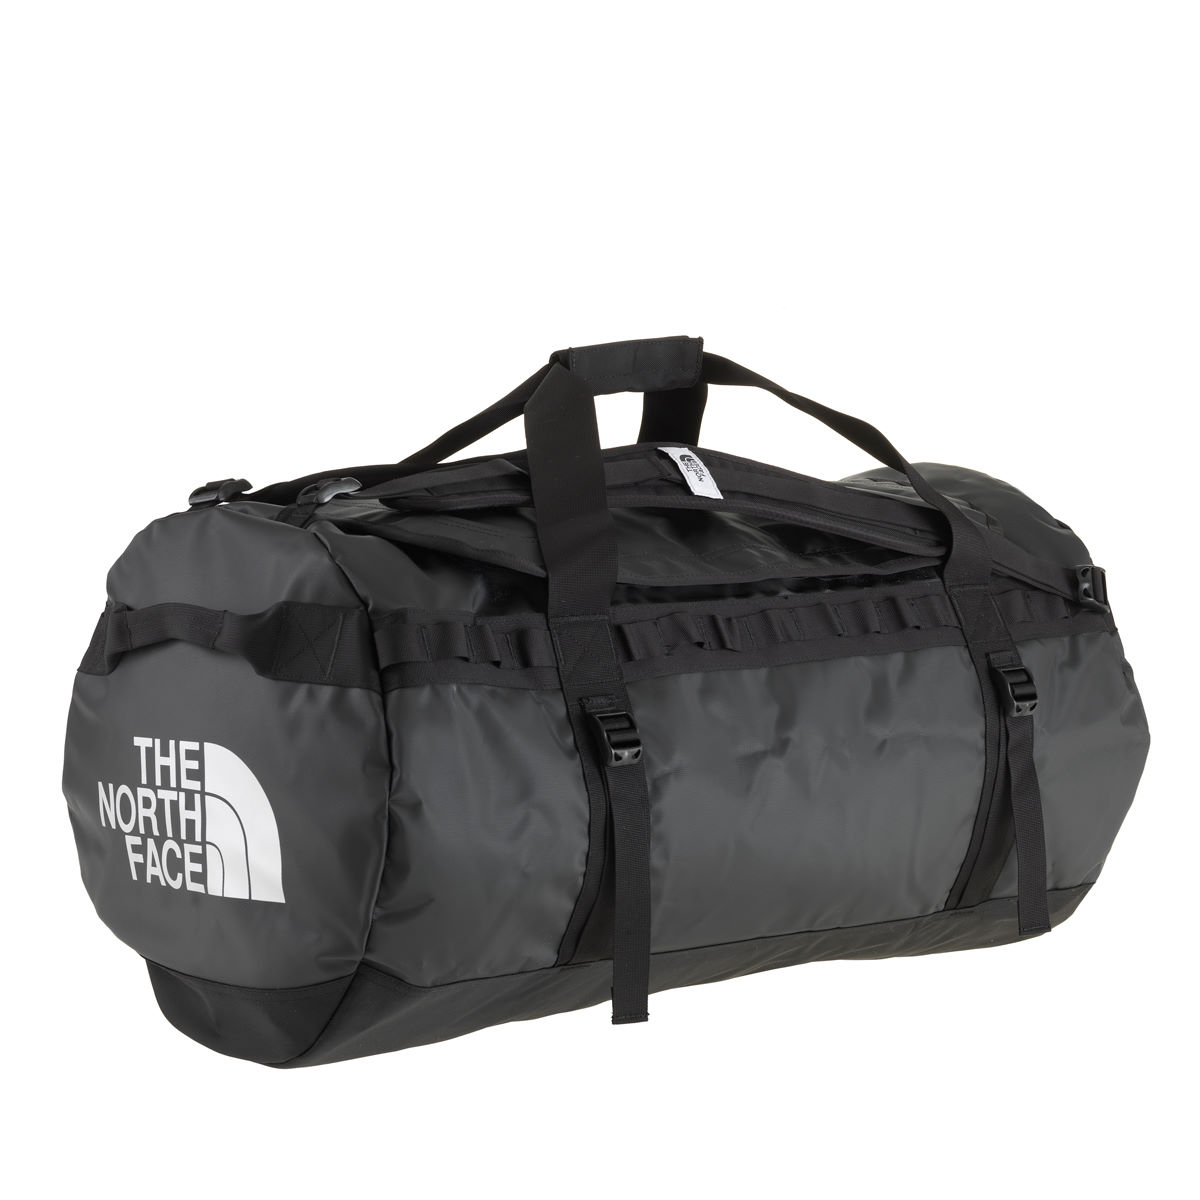 sacs de voyage the north face base camp duffel bag large wiggle france. Black Bedroom Furniture Sets. Home Design Ideas